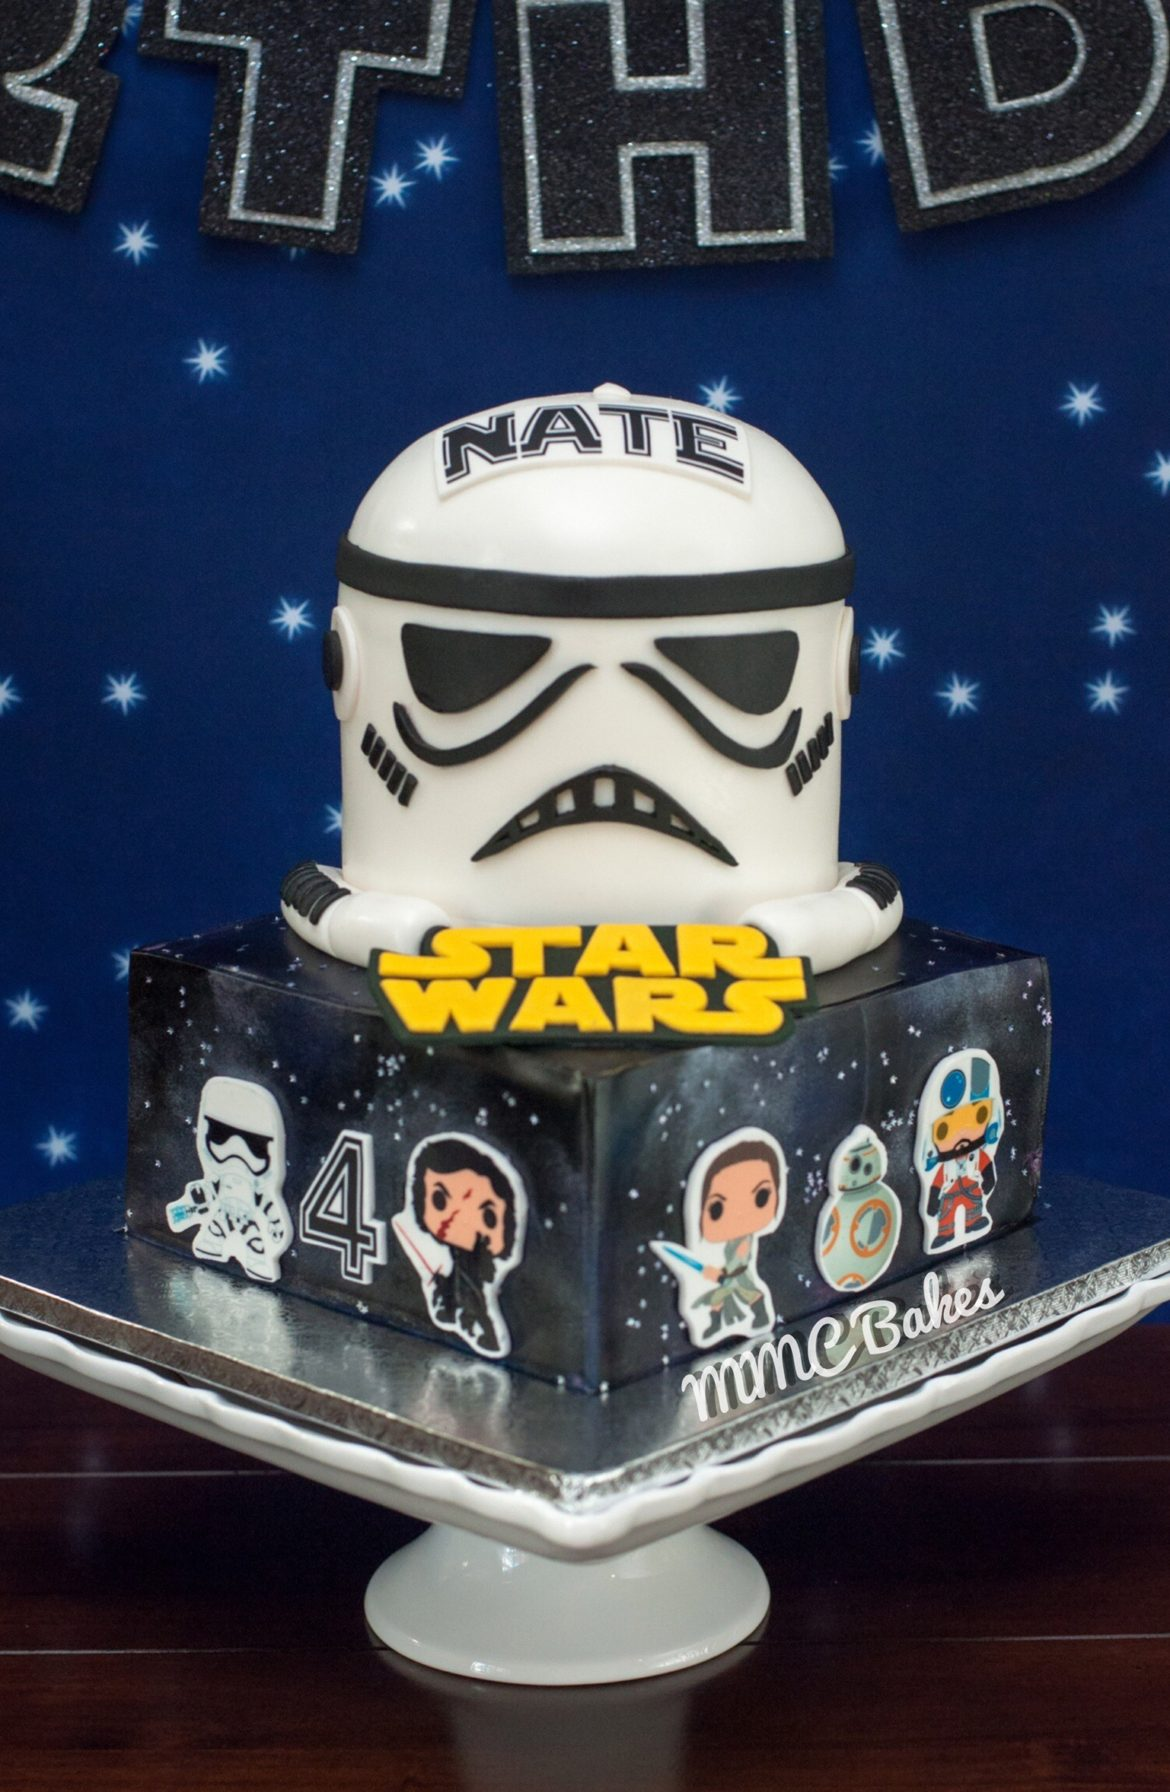 Marvelous Star Wars Birthday Cakes Mmc Bakes Funny Birthday Cards Online Eattedamsfinfo